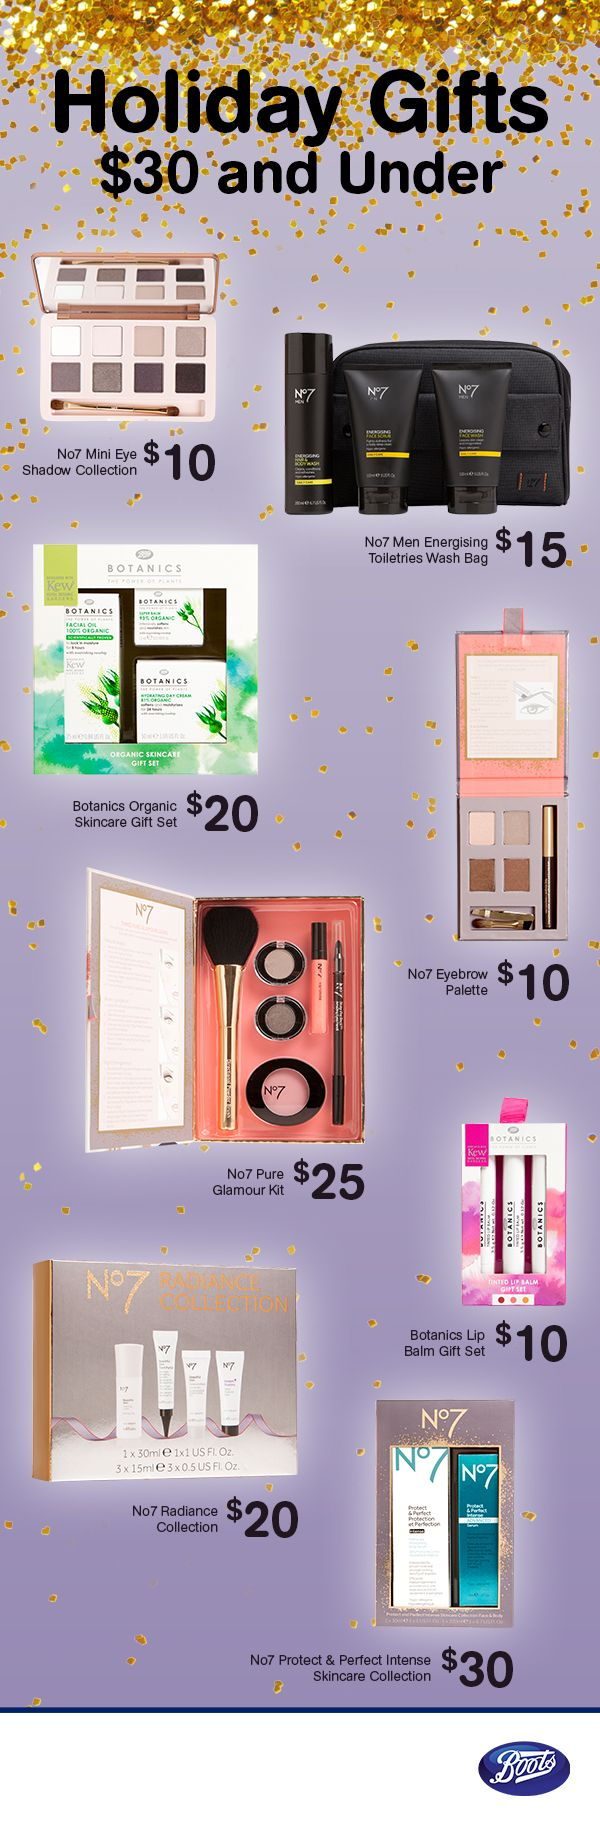 We have holiday gift sets and stocking stuffers for everyone on your list!